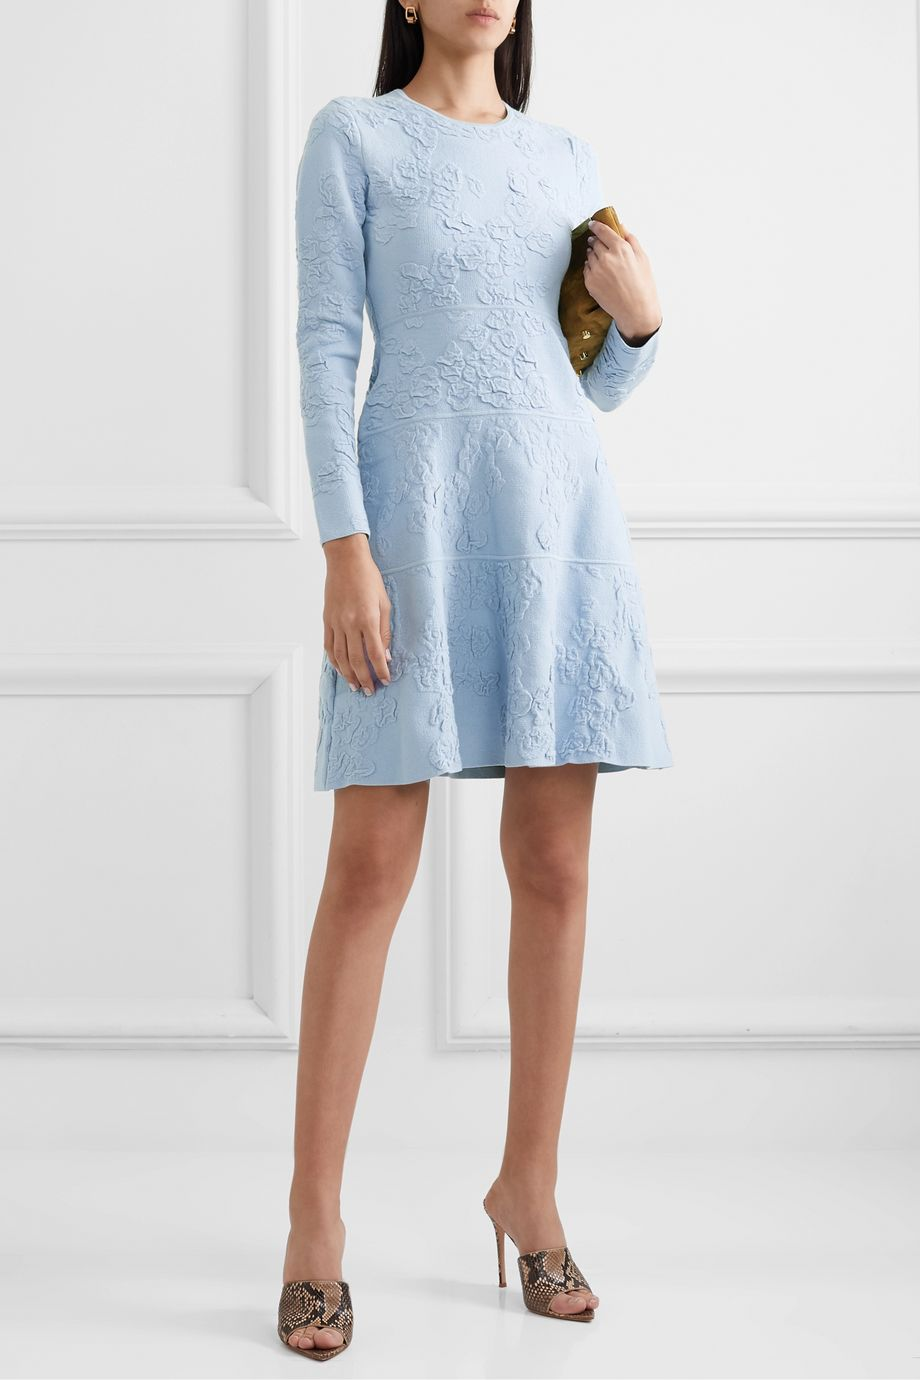 Lela Rose Textured-knit dress